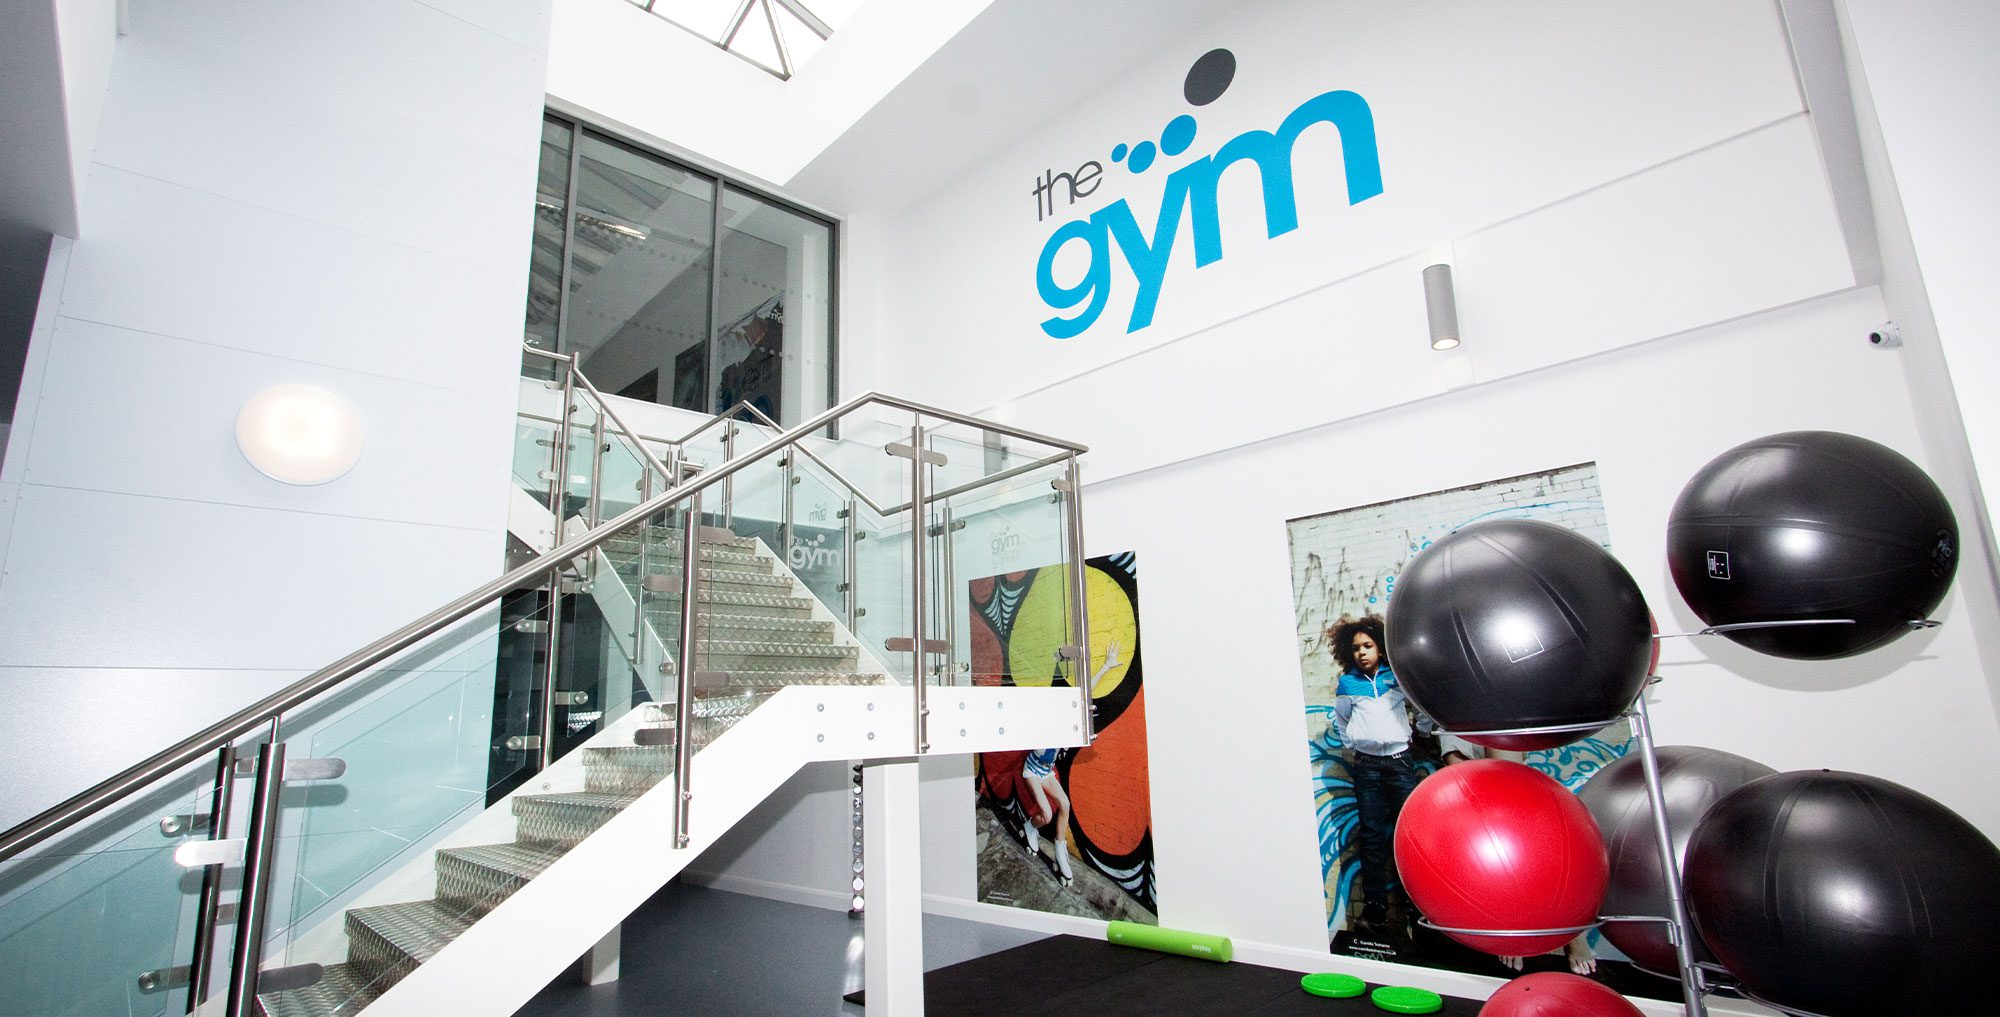 Health Club, Fitness Centre & Gym Architects & Interior Design Consultants